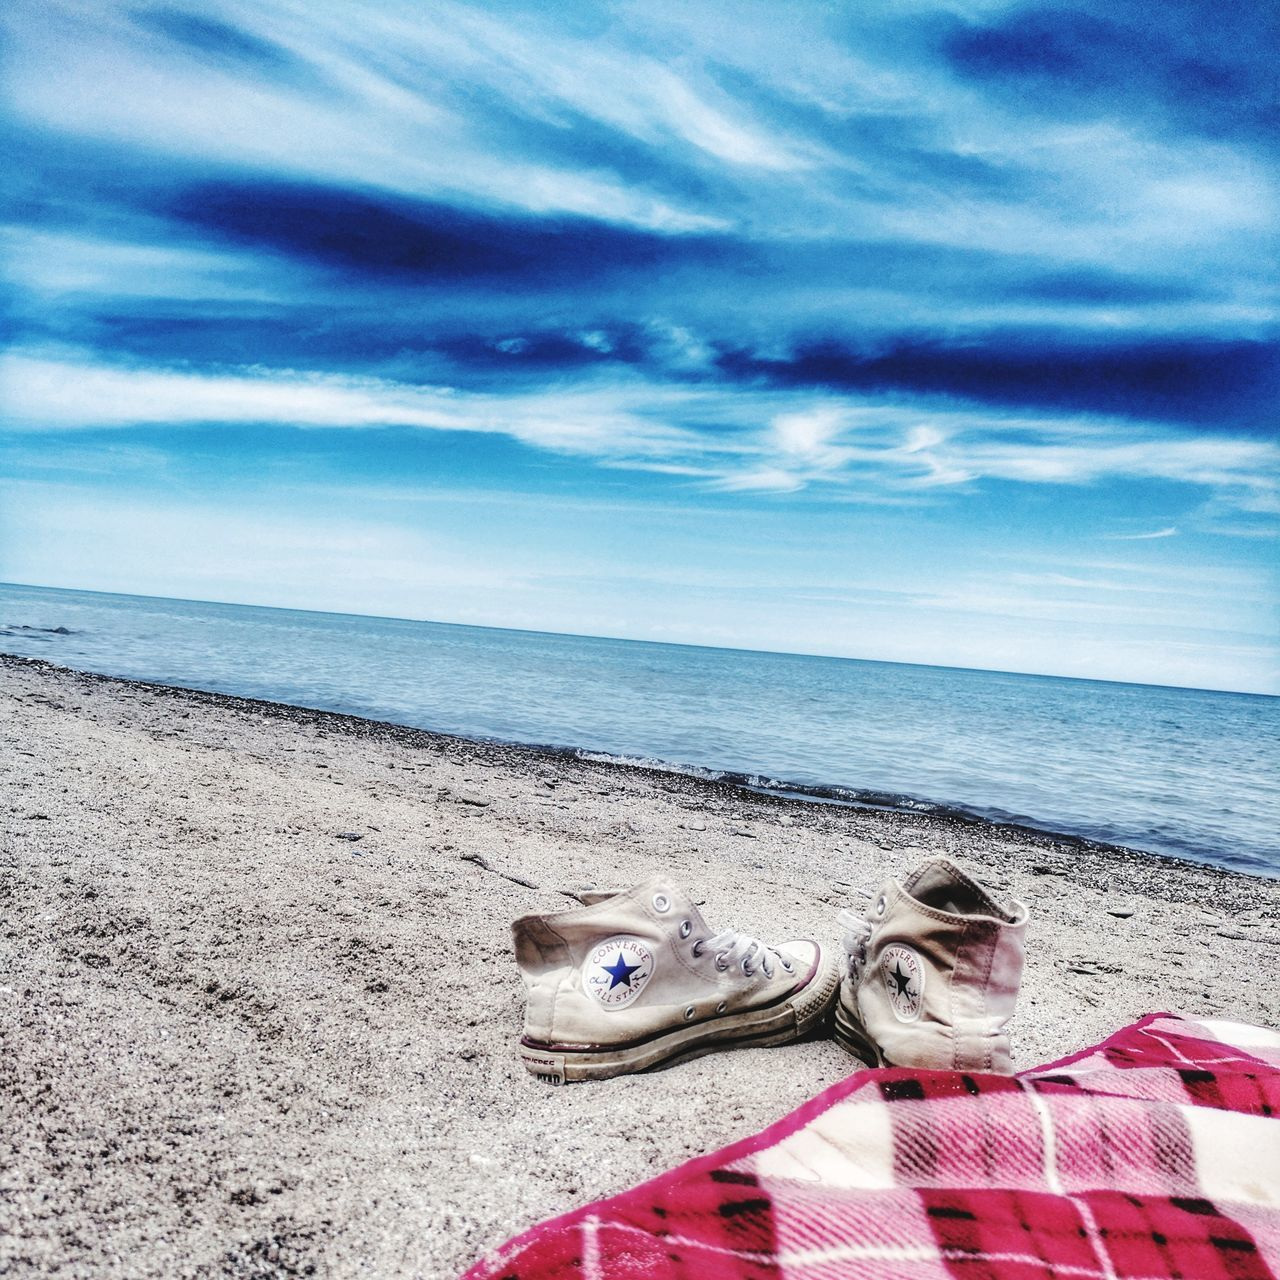 horizon over water, sea, beach, water, sand, sky, nature, beauty in nature, cloud - sky, scenics, tranquil scene, outdoors, no people, tranquility, day